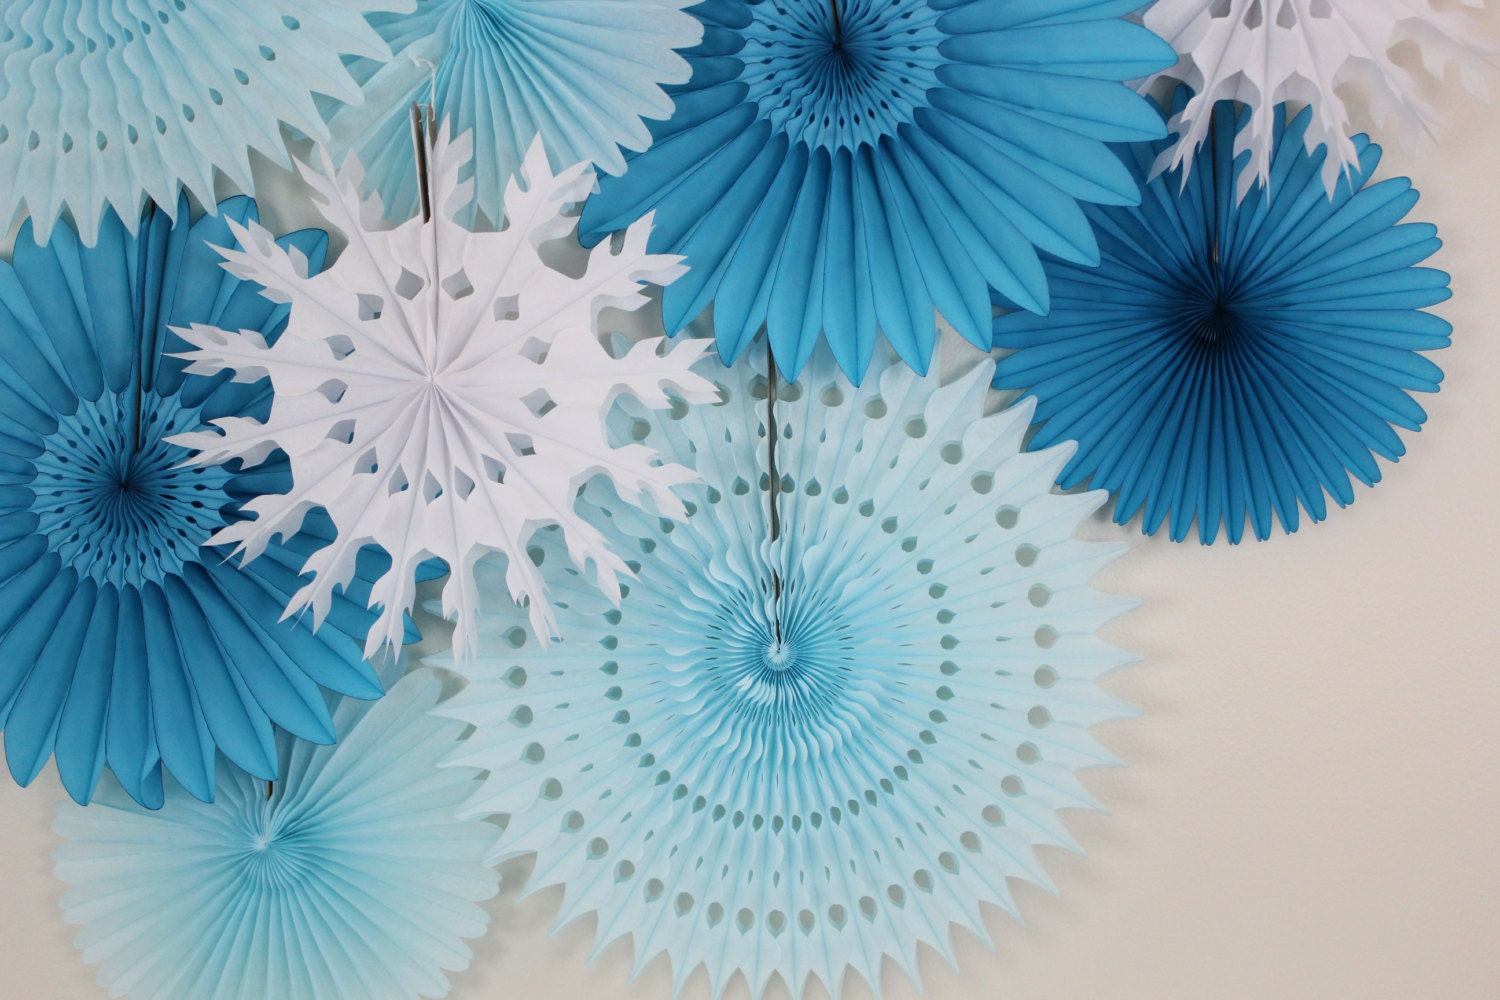 Winter Wedding Decor Tissue Paper Fan Wheels And Snowflakes